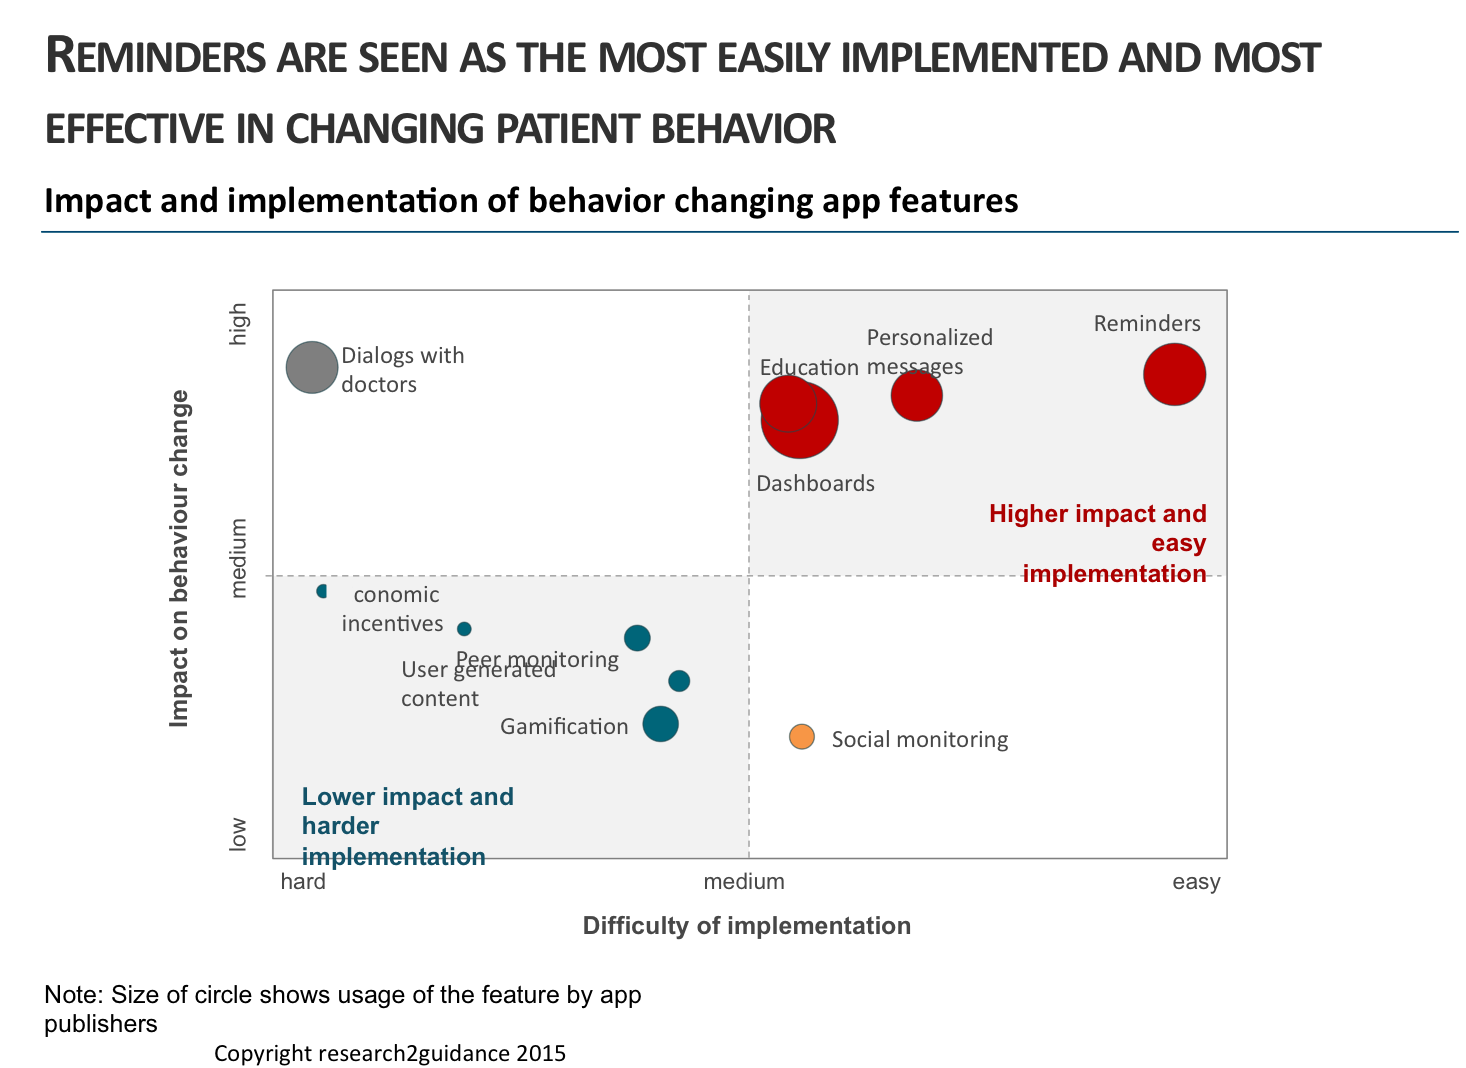 impactingbehaviourchange